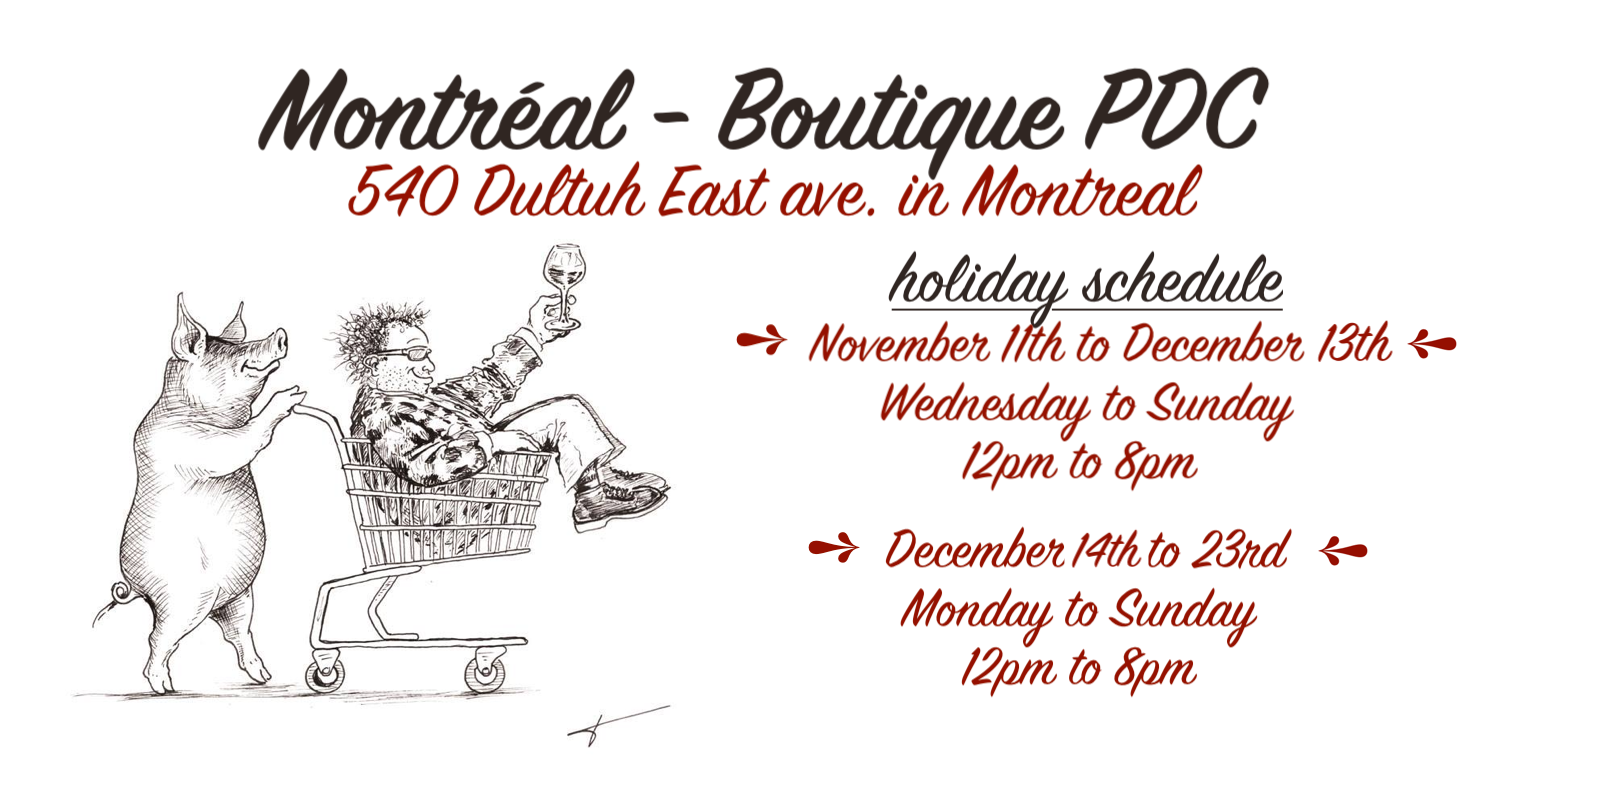 Montreal boutique PDC schedule